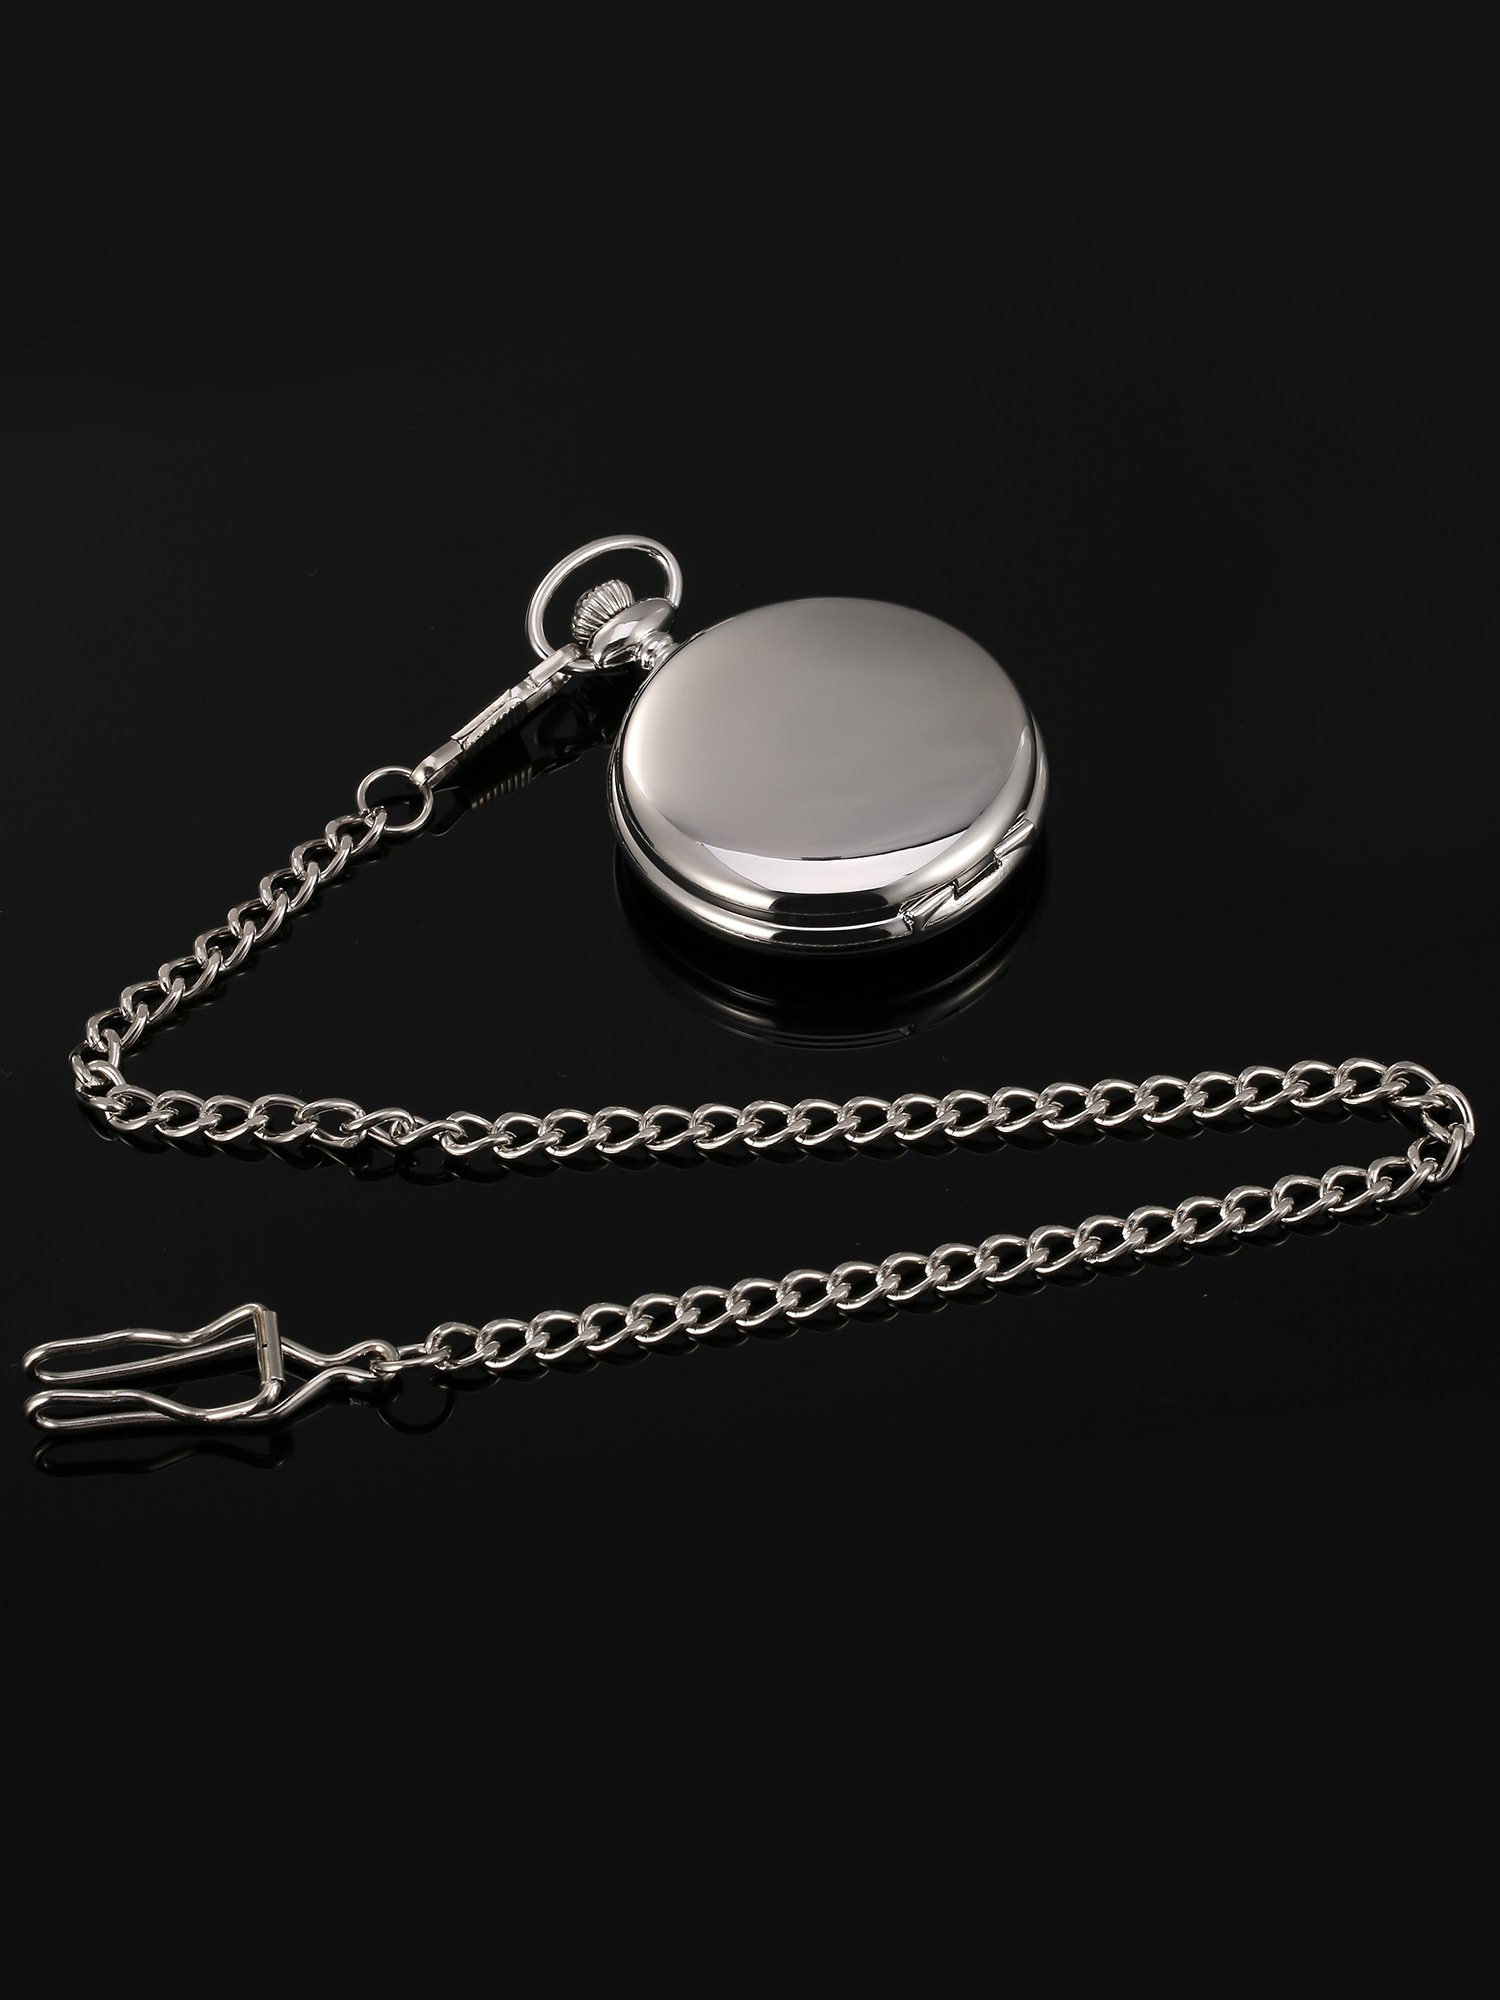 Mudder Classic Smooth Surface Mechanical Pocket Watch with Chain Xmas Birthday Wedding Father Day Gift (Silver) by Mudder (Image #6)